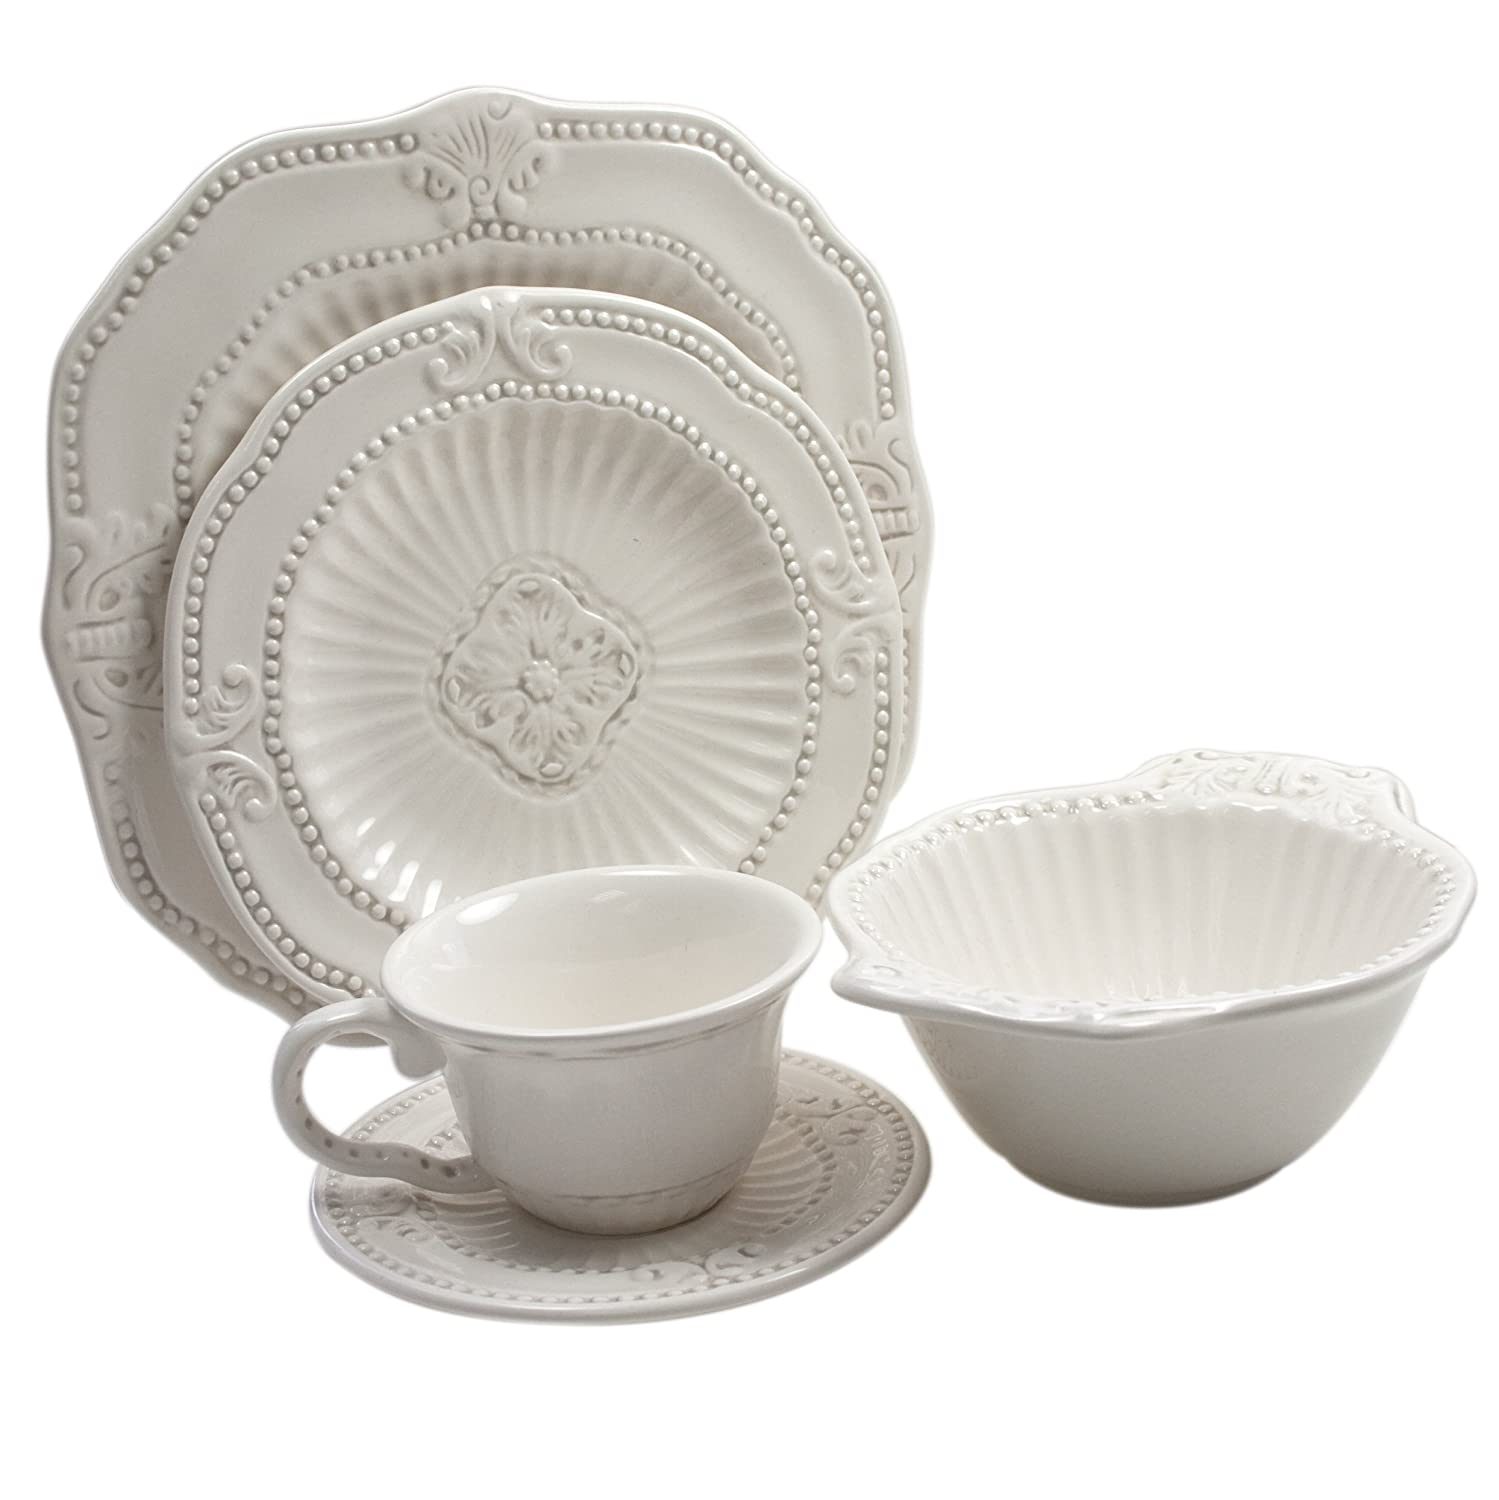 Amazon.com | American Atelier 5286-20-GB 20-Piece Baroque Dinnerware Set Dinnerware Sets  sc 1 st  Amazon.com & Amazon.com | American Atelier 5286-20-GB 20-Piece Baroque Dinnerware ...